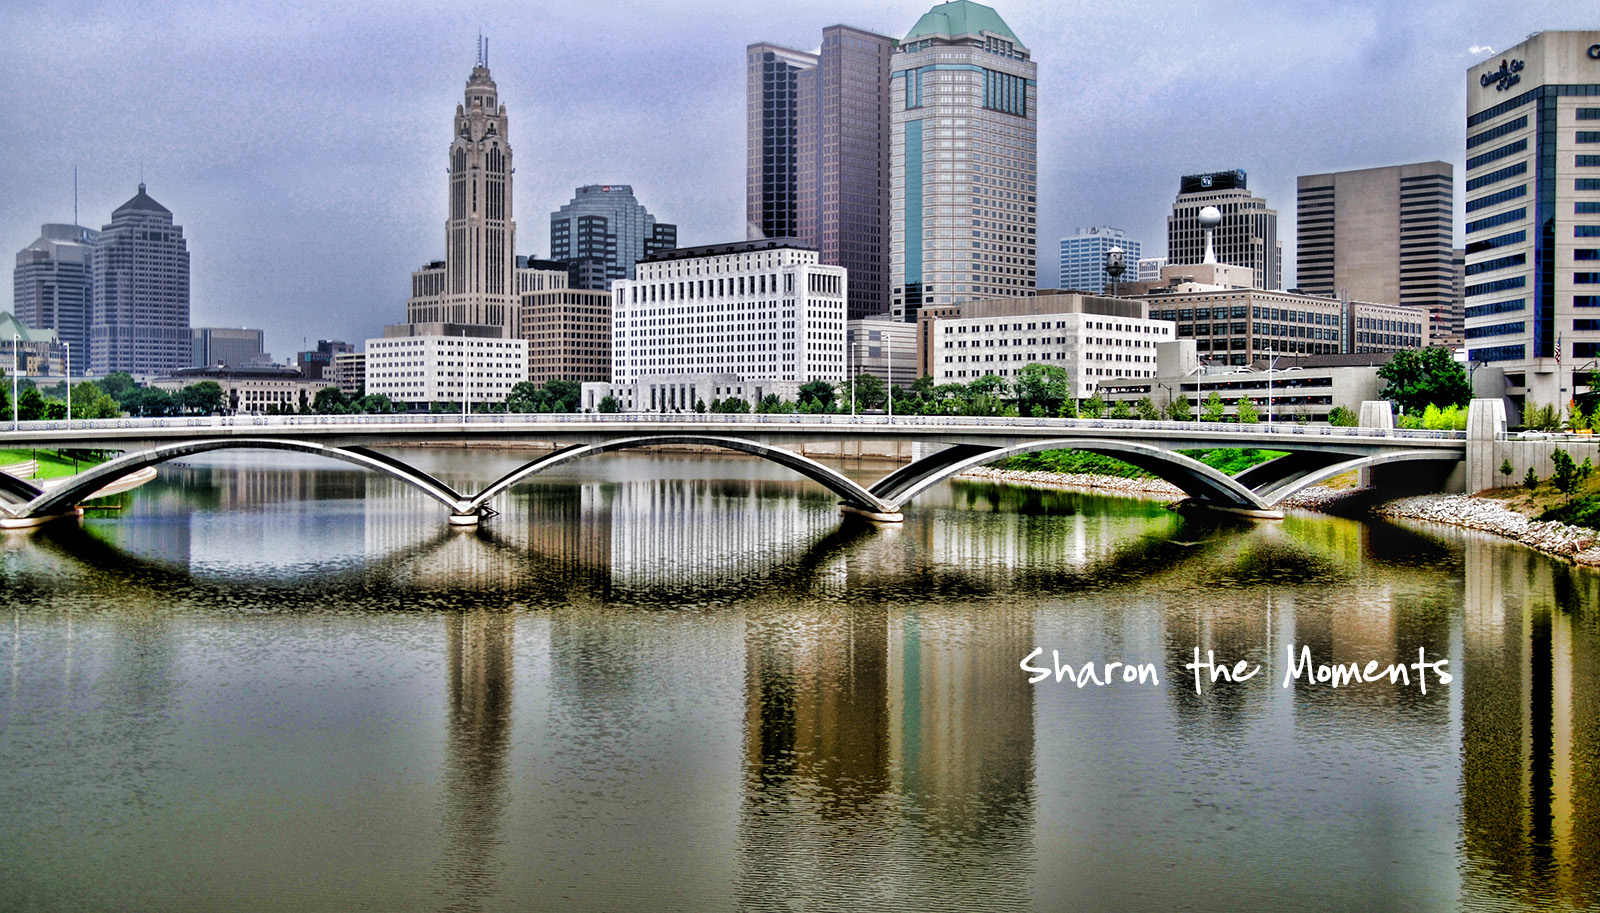 Downtown Columbus Ohio Skyline Color Texture and Emotions|Sharon the Moments blog